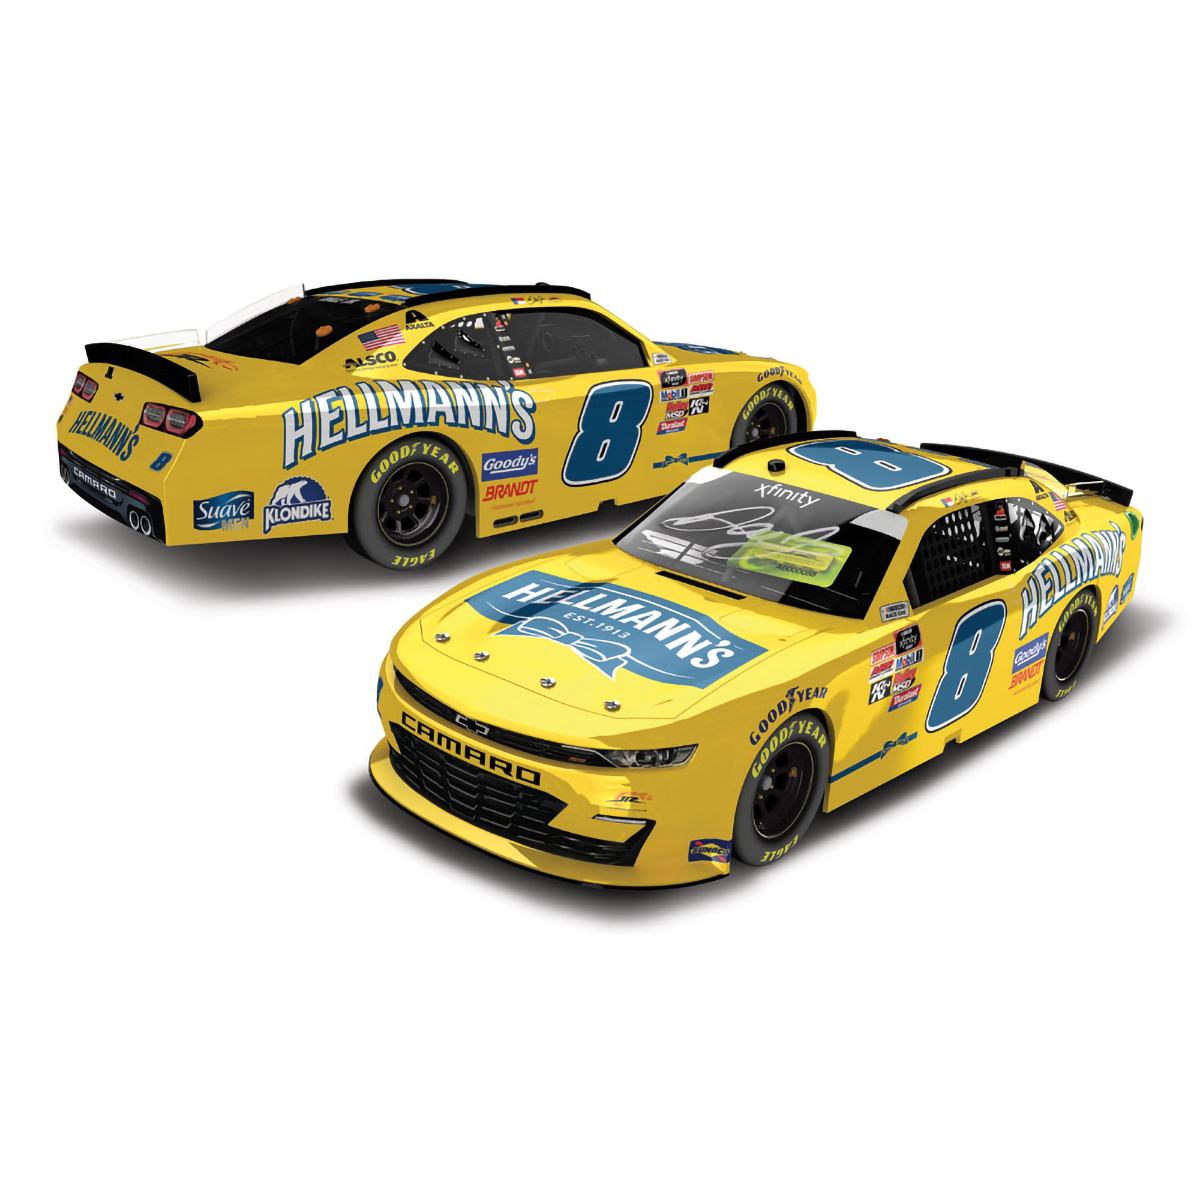 Dale Jr 2020 Xfinity Hellmann's Autographed HO 1:24 Die-Cast